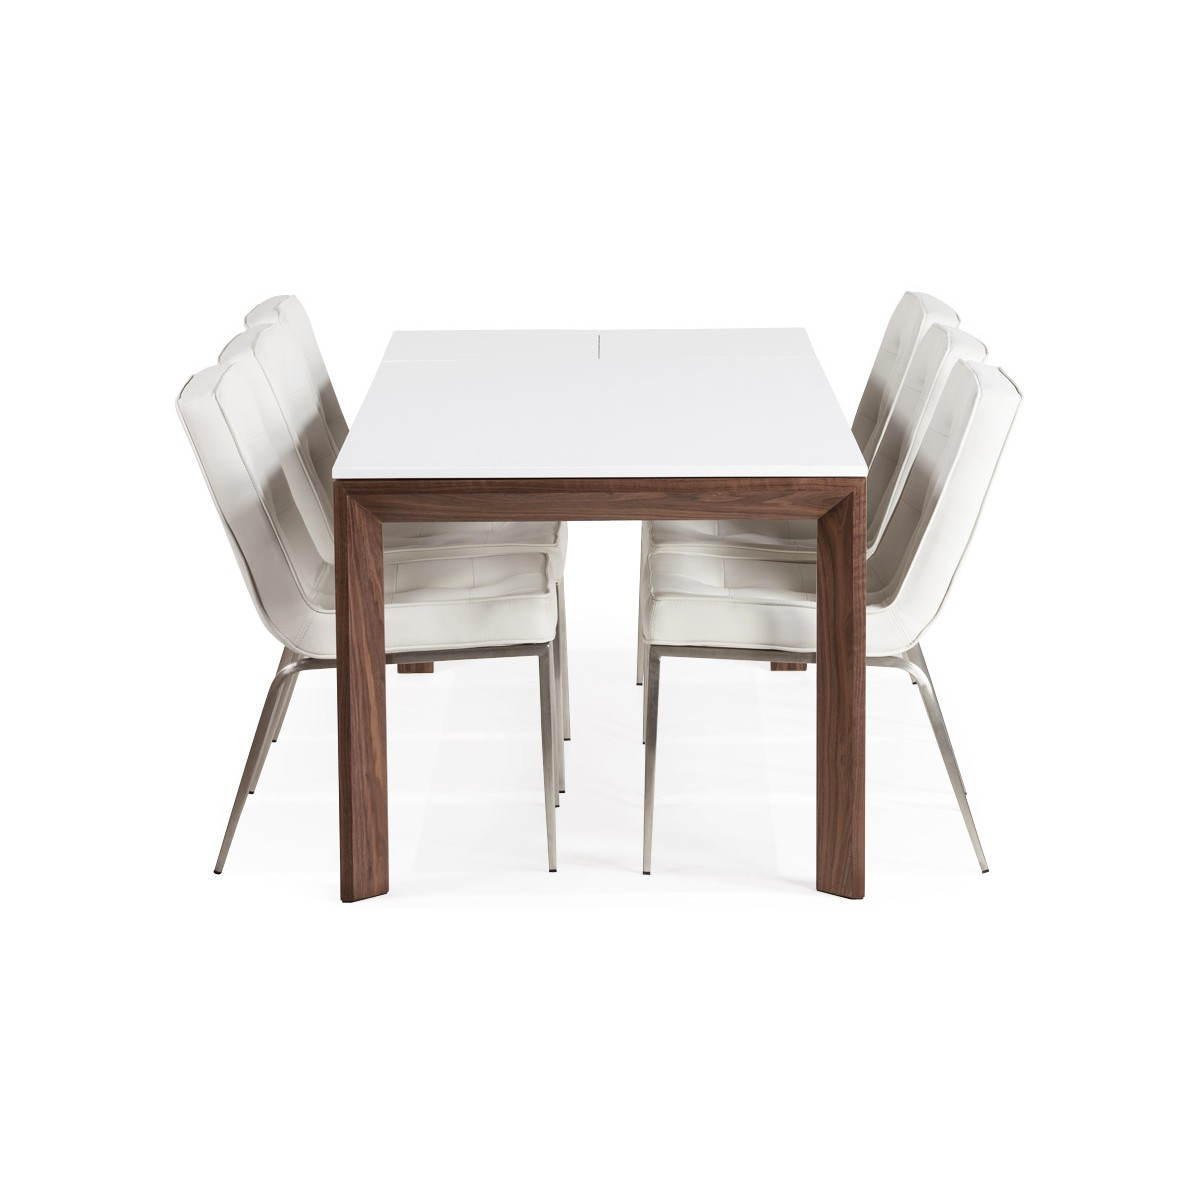 Table bois rallonge ikea for Table rectangulaire a rallonge